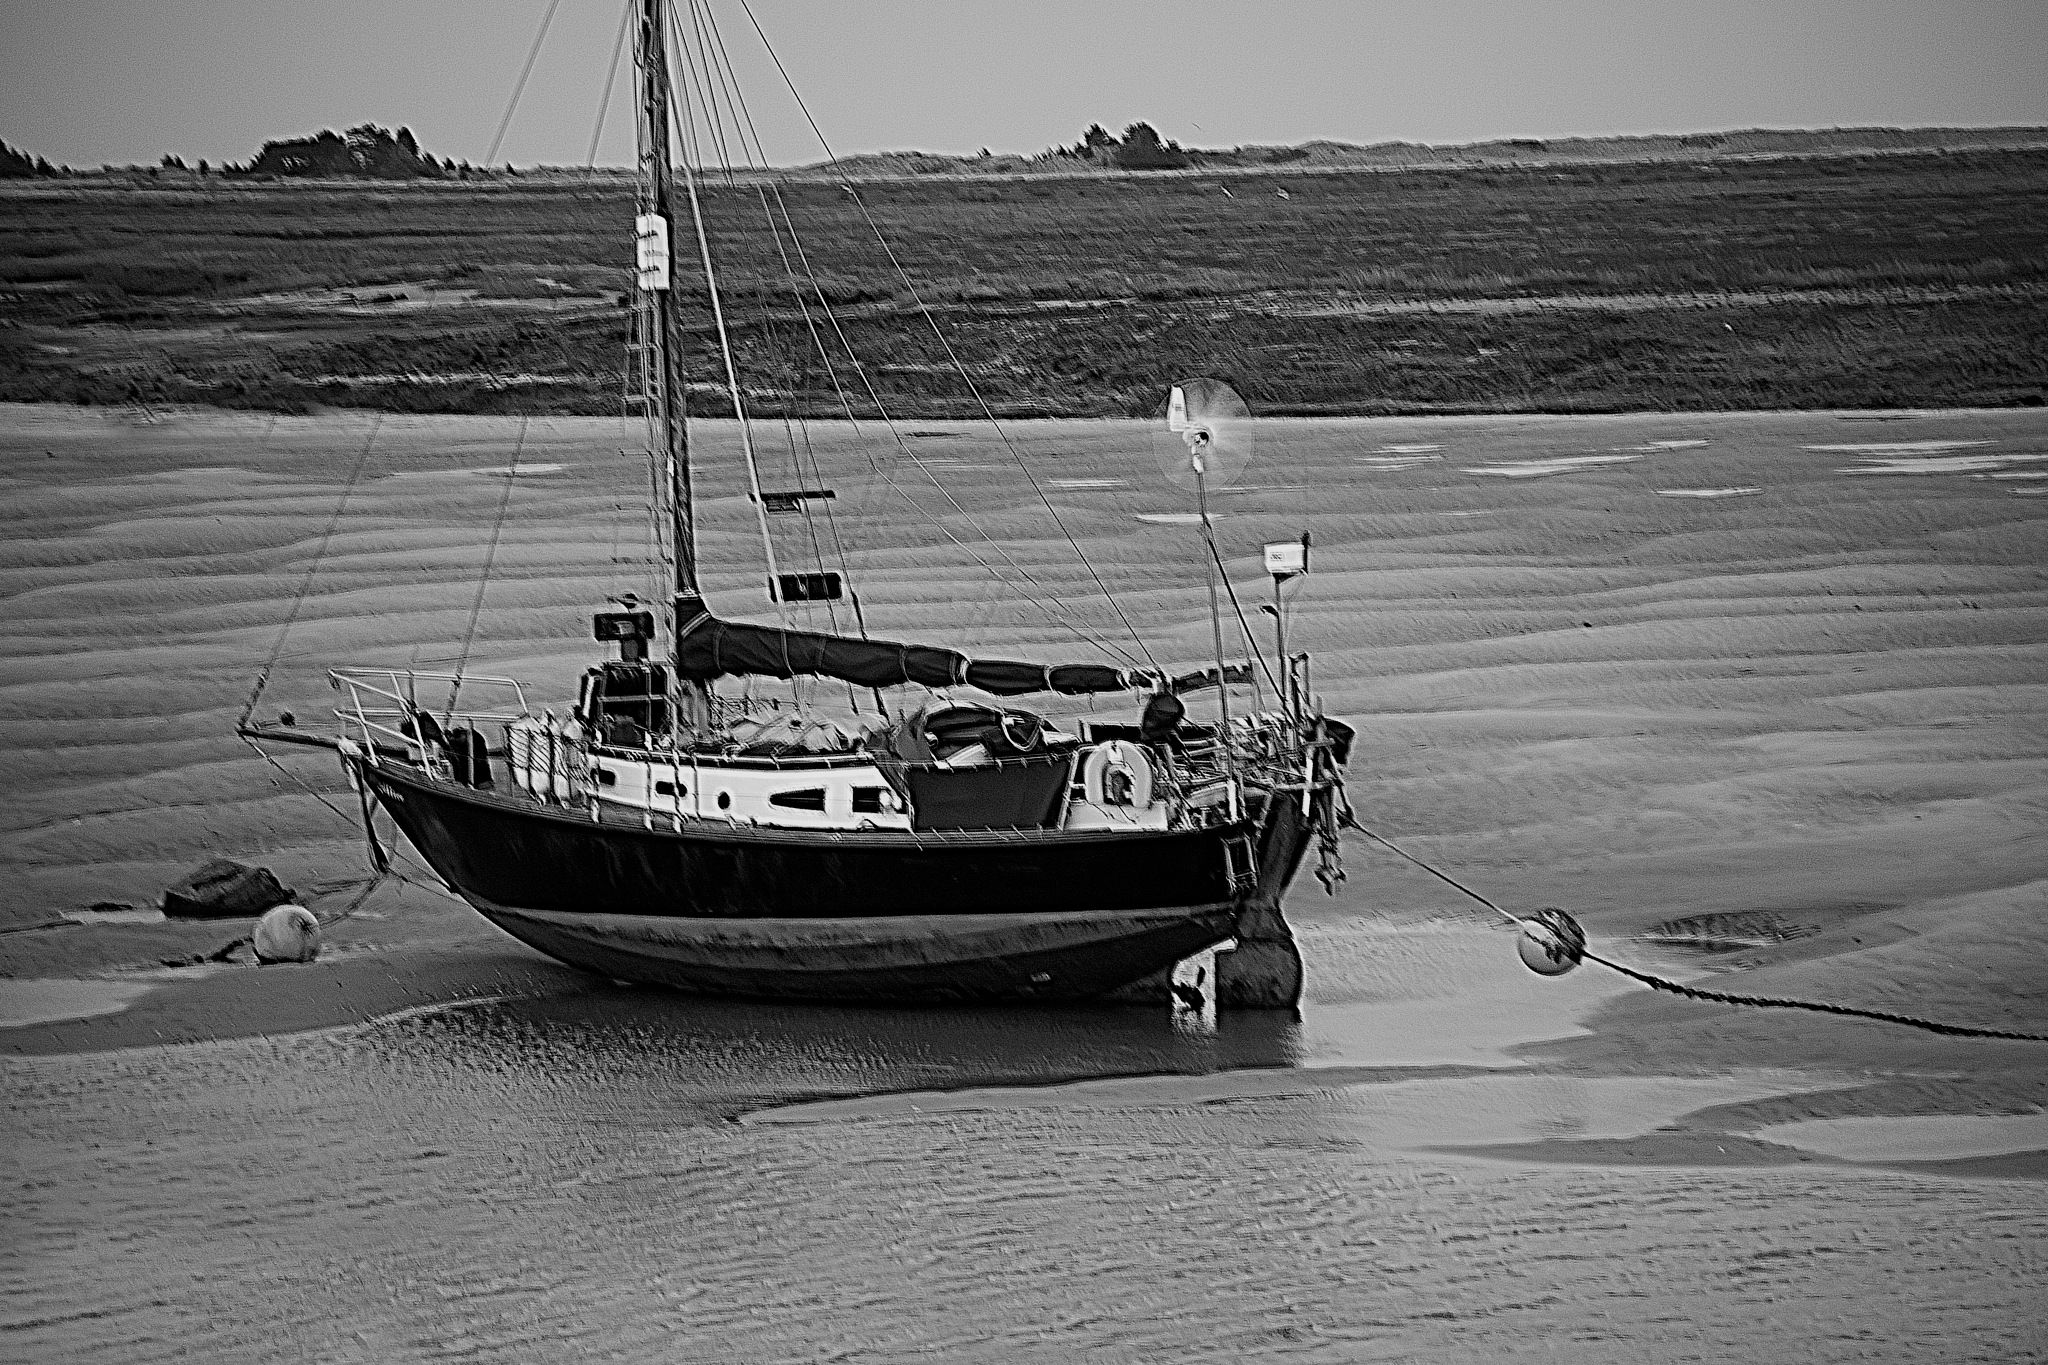 Waiting for the Tide by Gordon